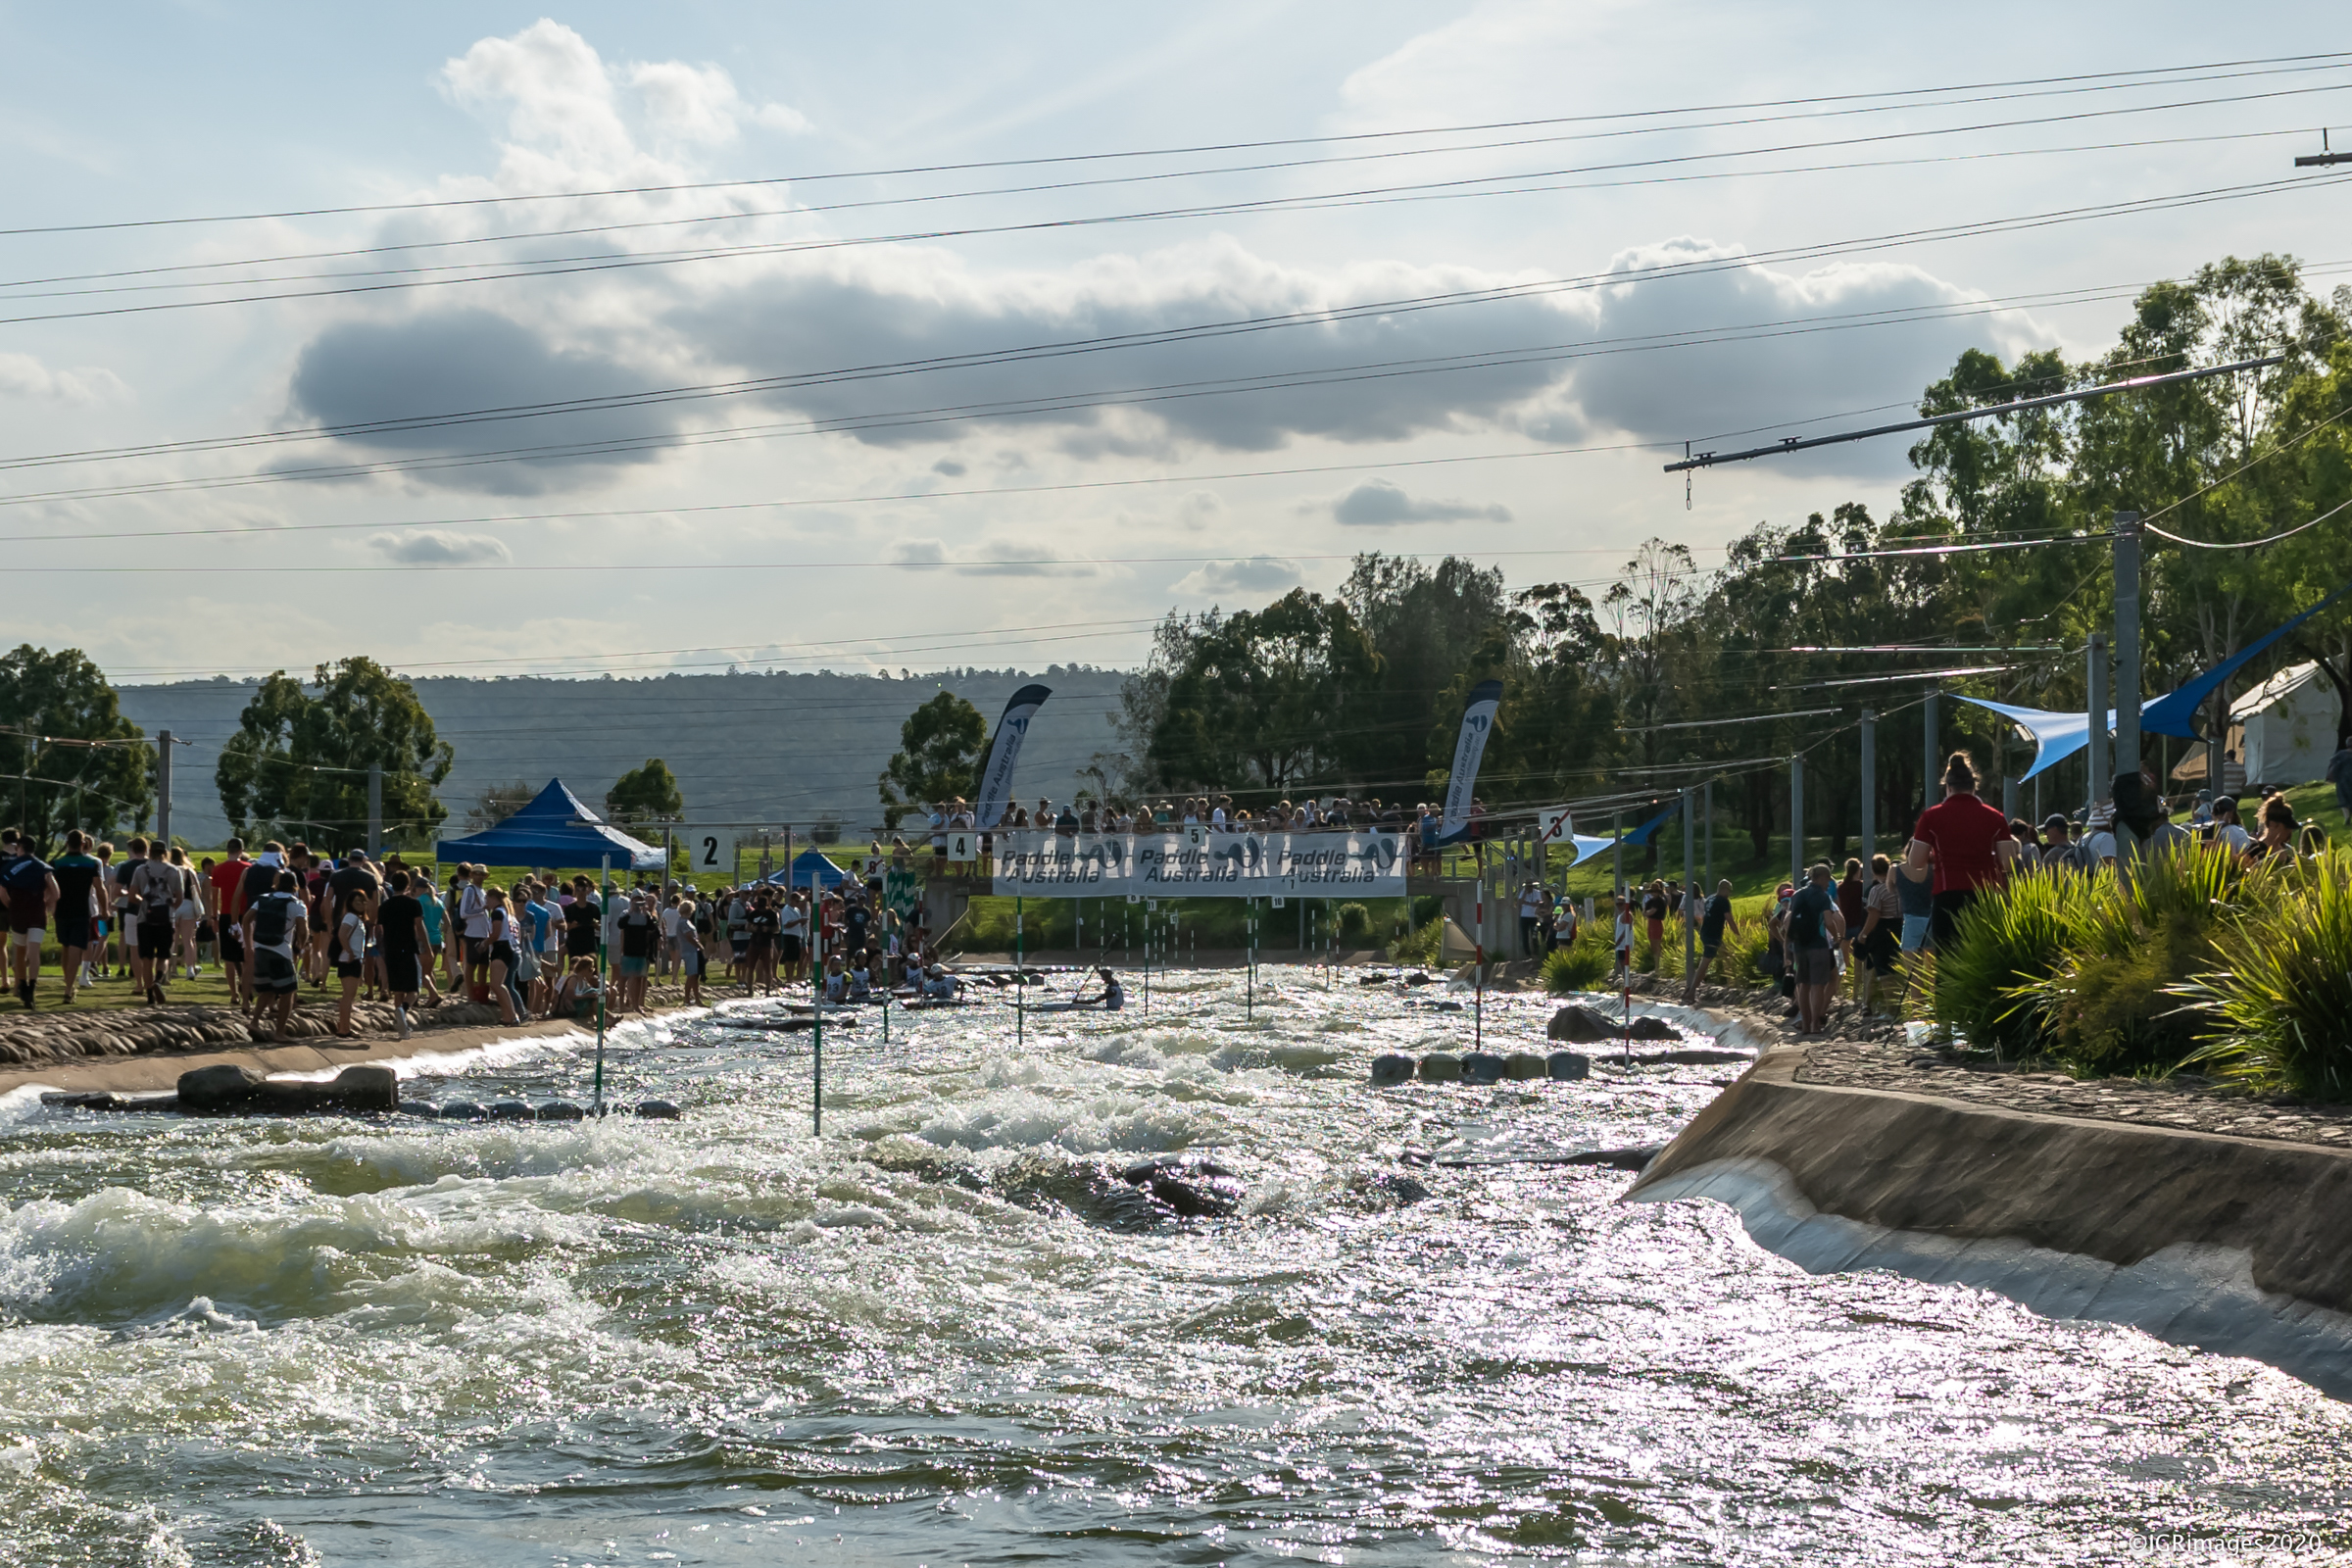 Penrith Whitewater Stadium - Photo credit JGRImages